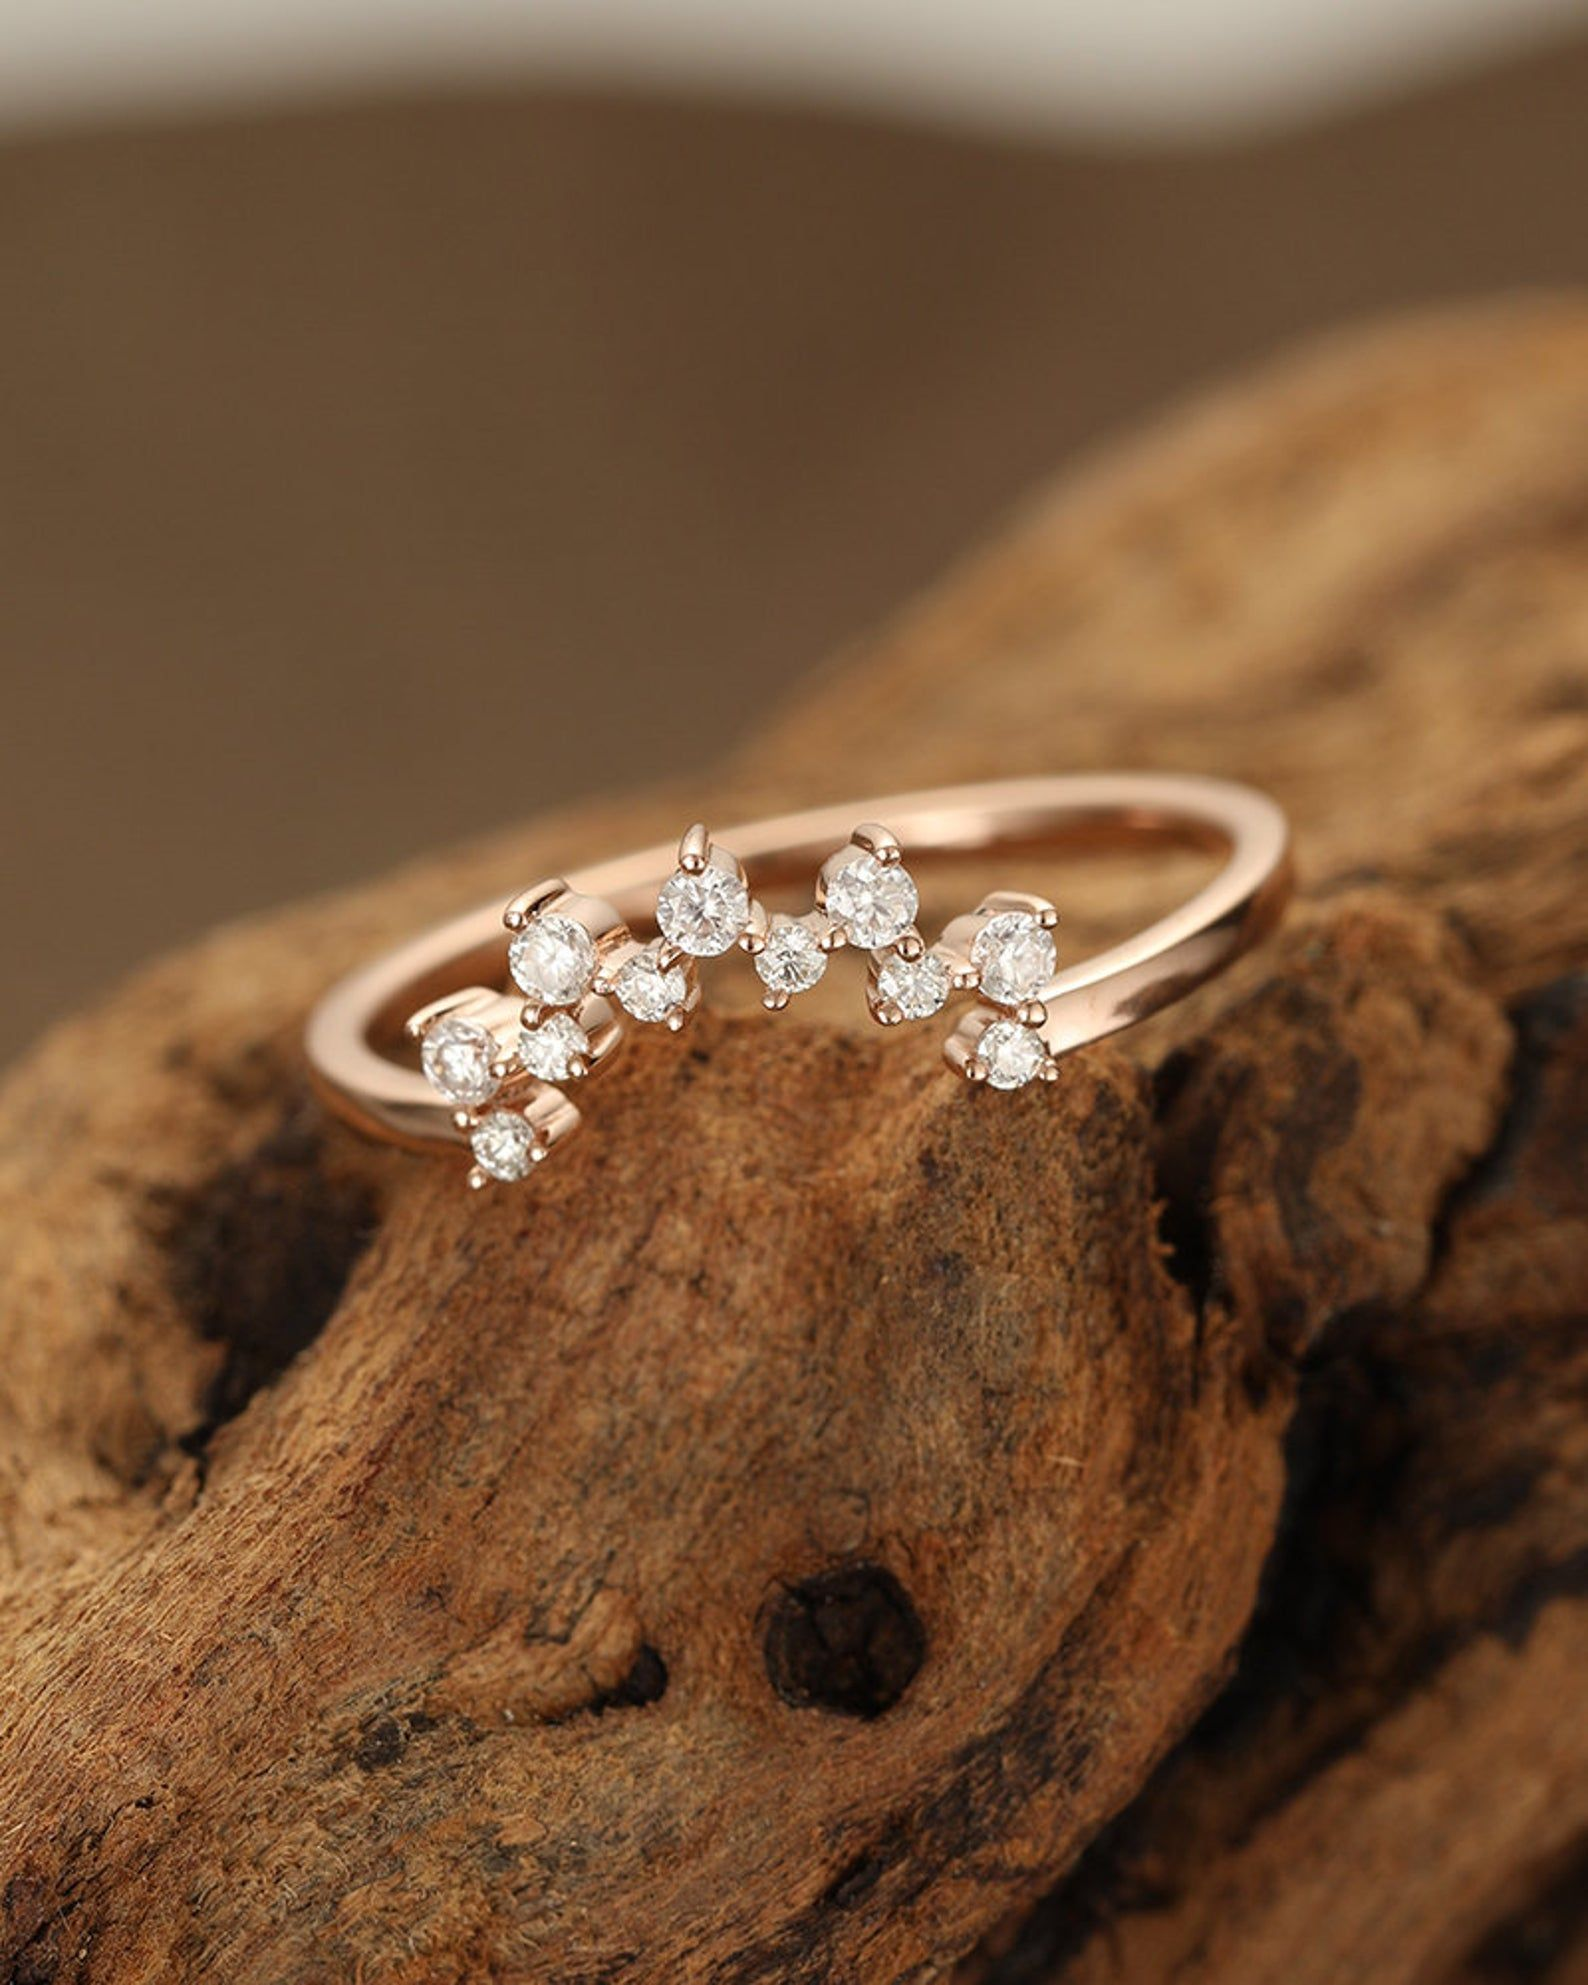 Curved wedding band rose gold wedding band women Unique